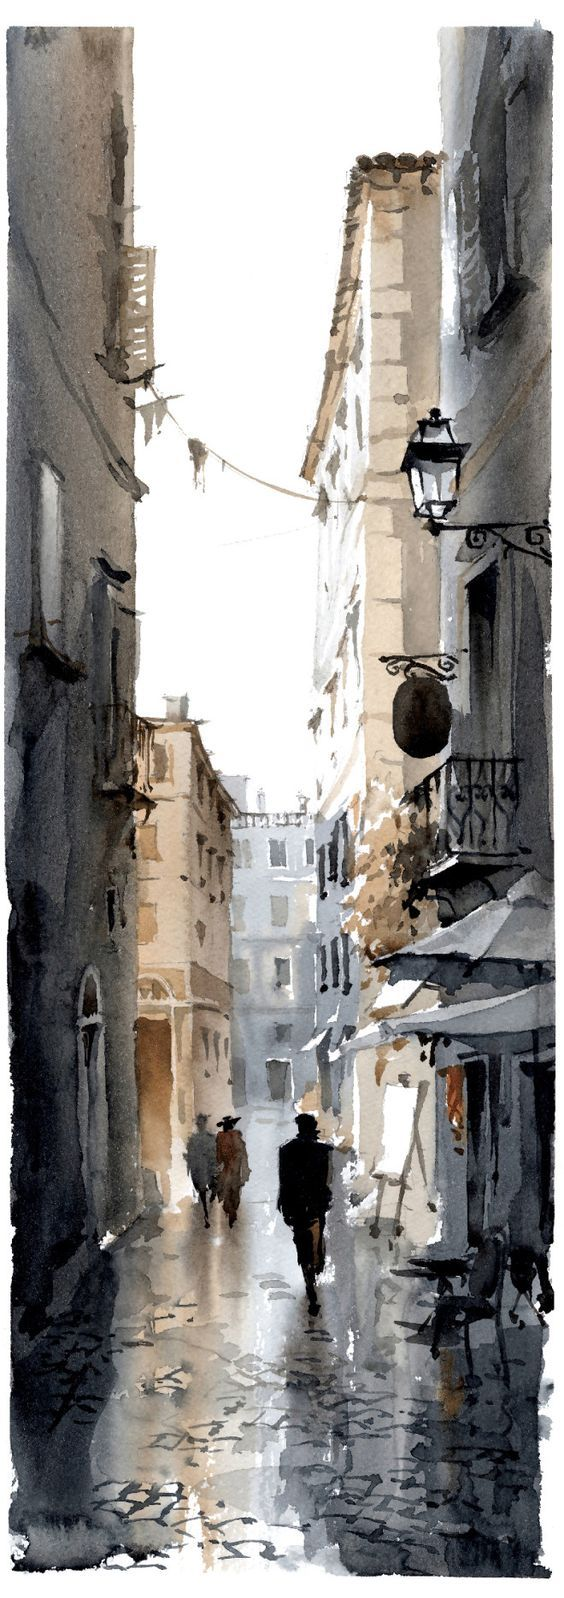 aquarelle - watercolor - Vicolo 2 | Igor Sava: